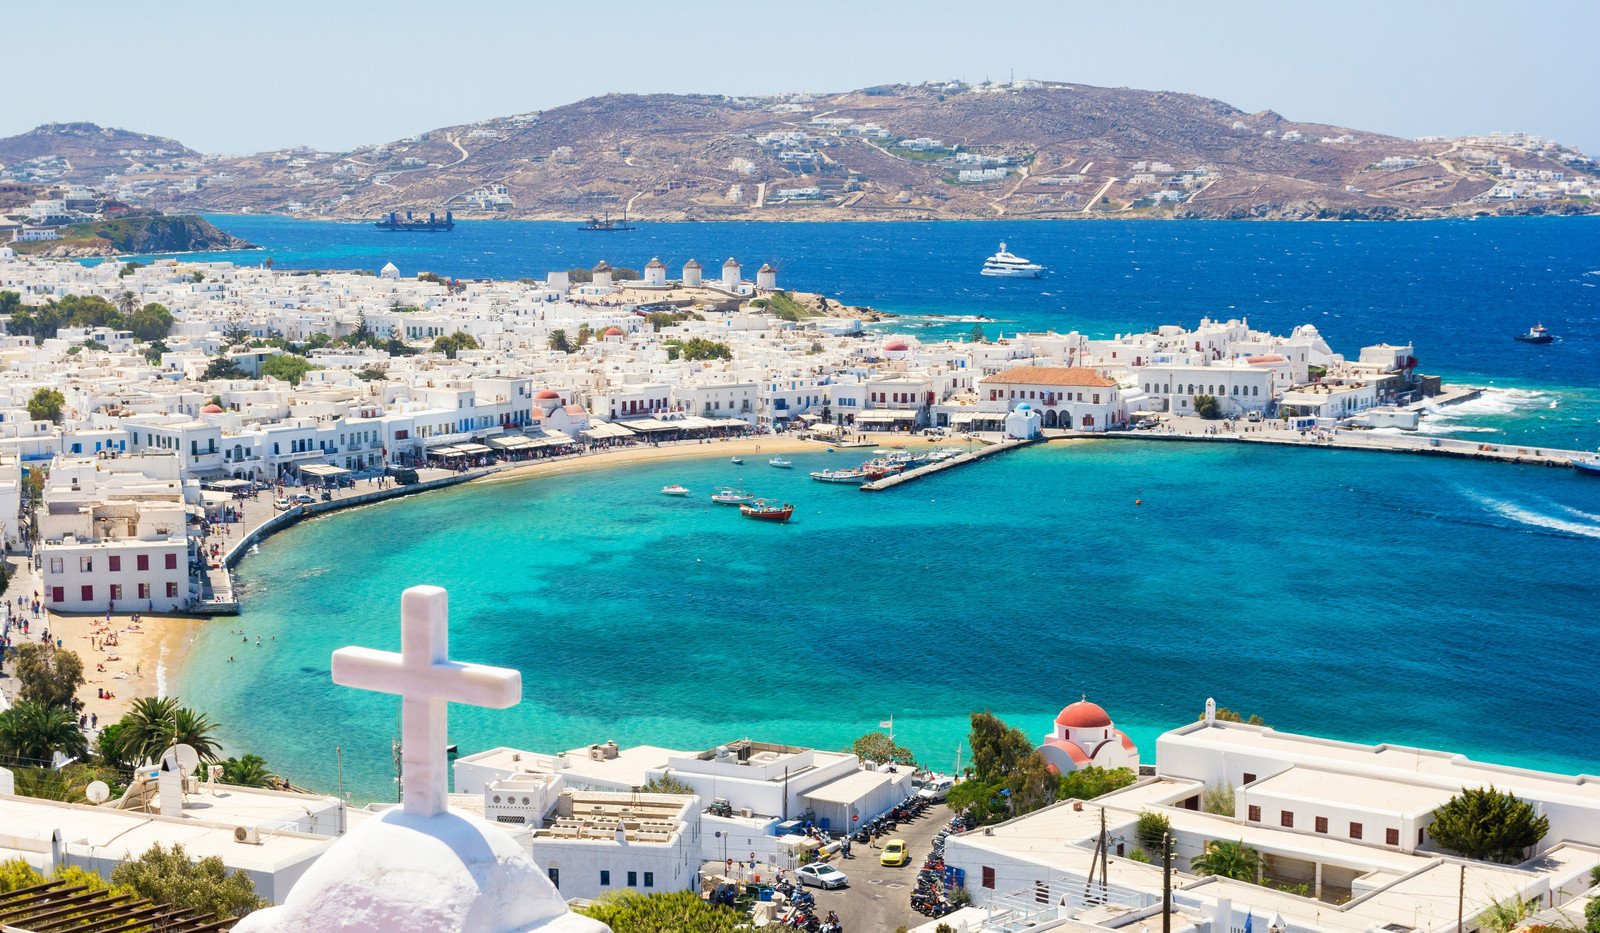 Canva - View on Mykonos island, Cyclades